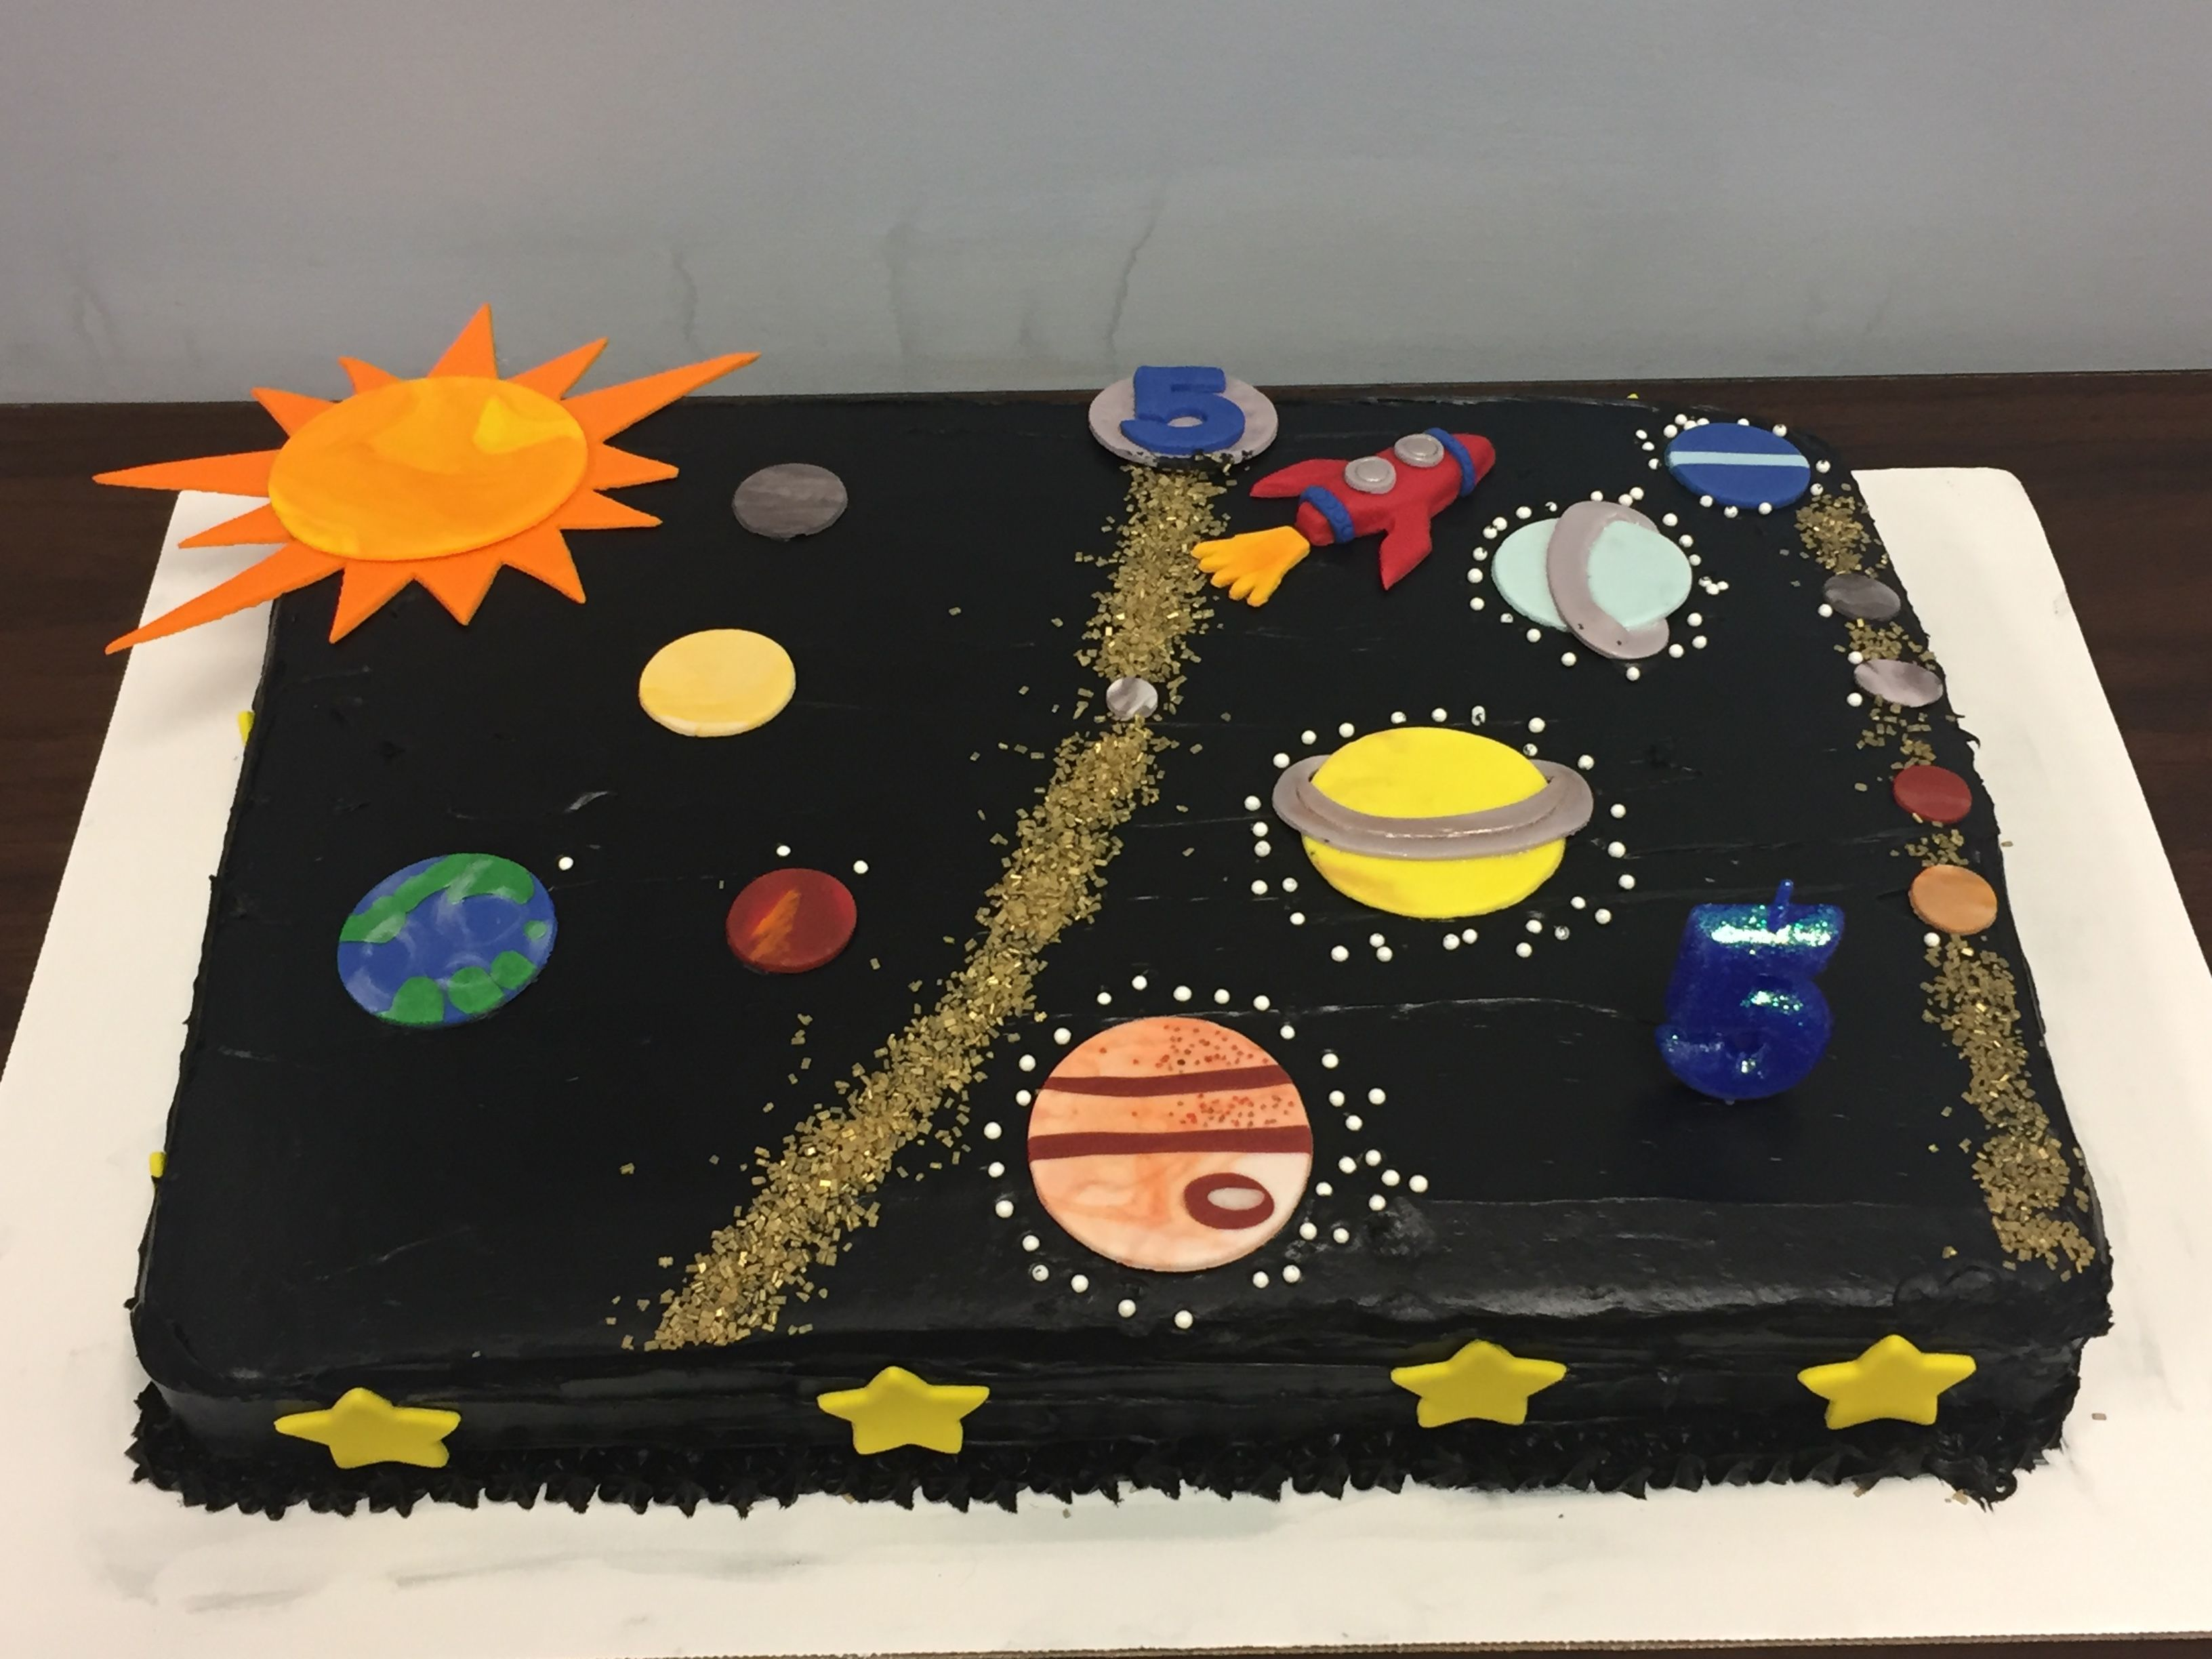 Solar System Birthday Cake With All 8 Planets And 5 Dwarf Planets